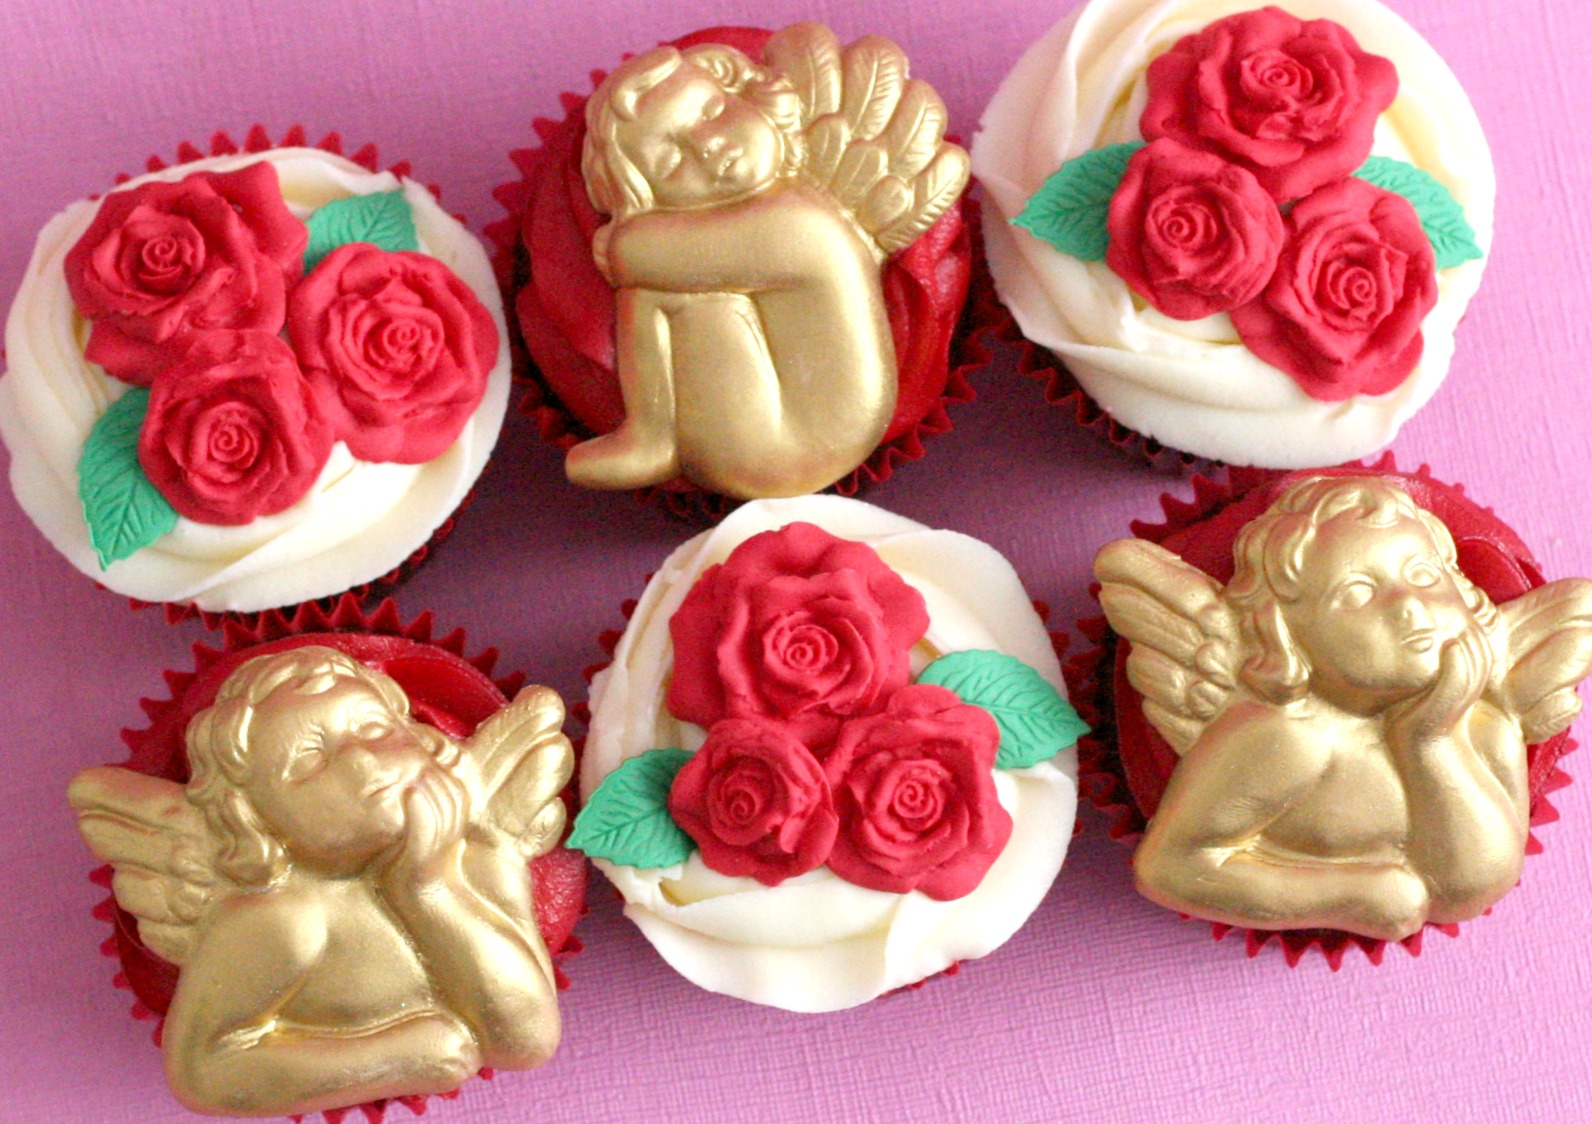 Valentines cherub and roses